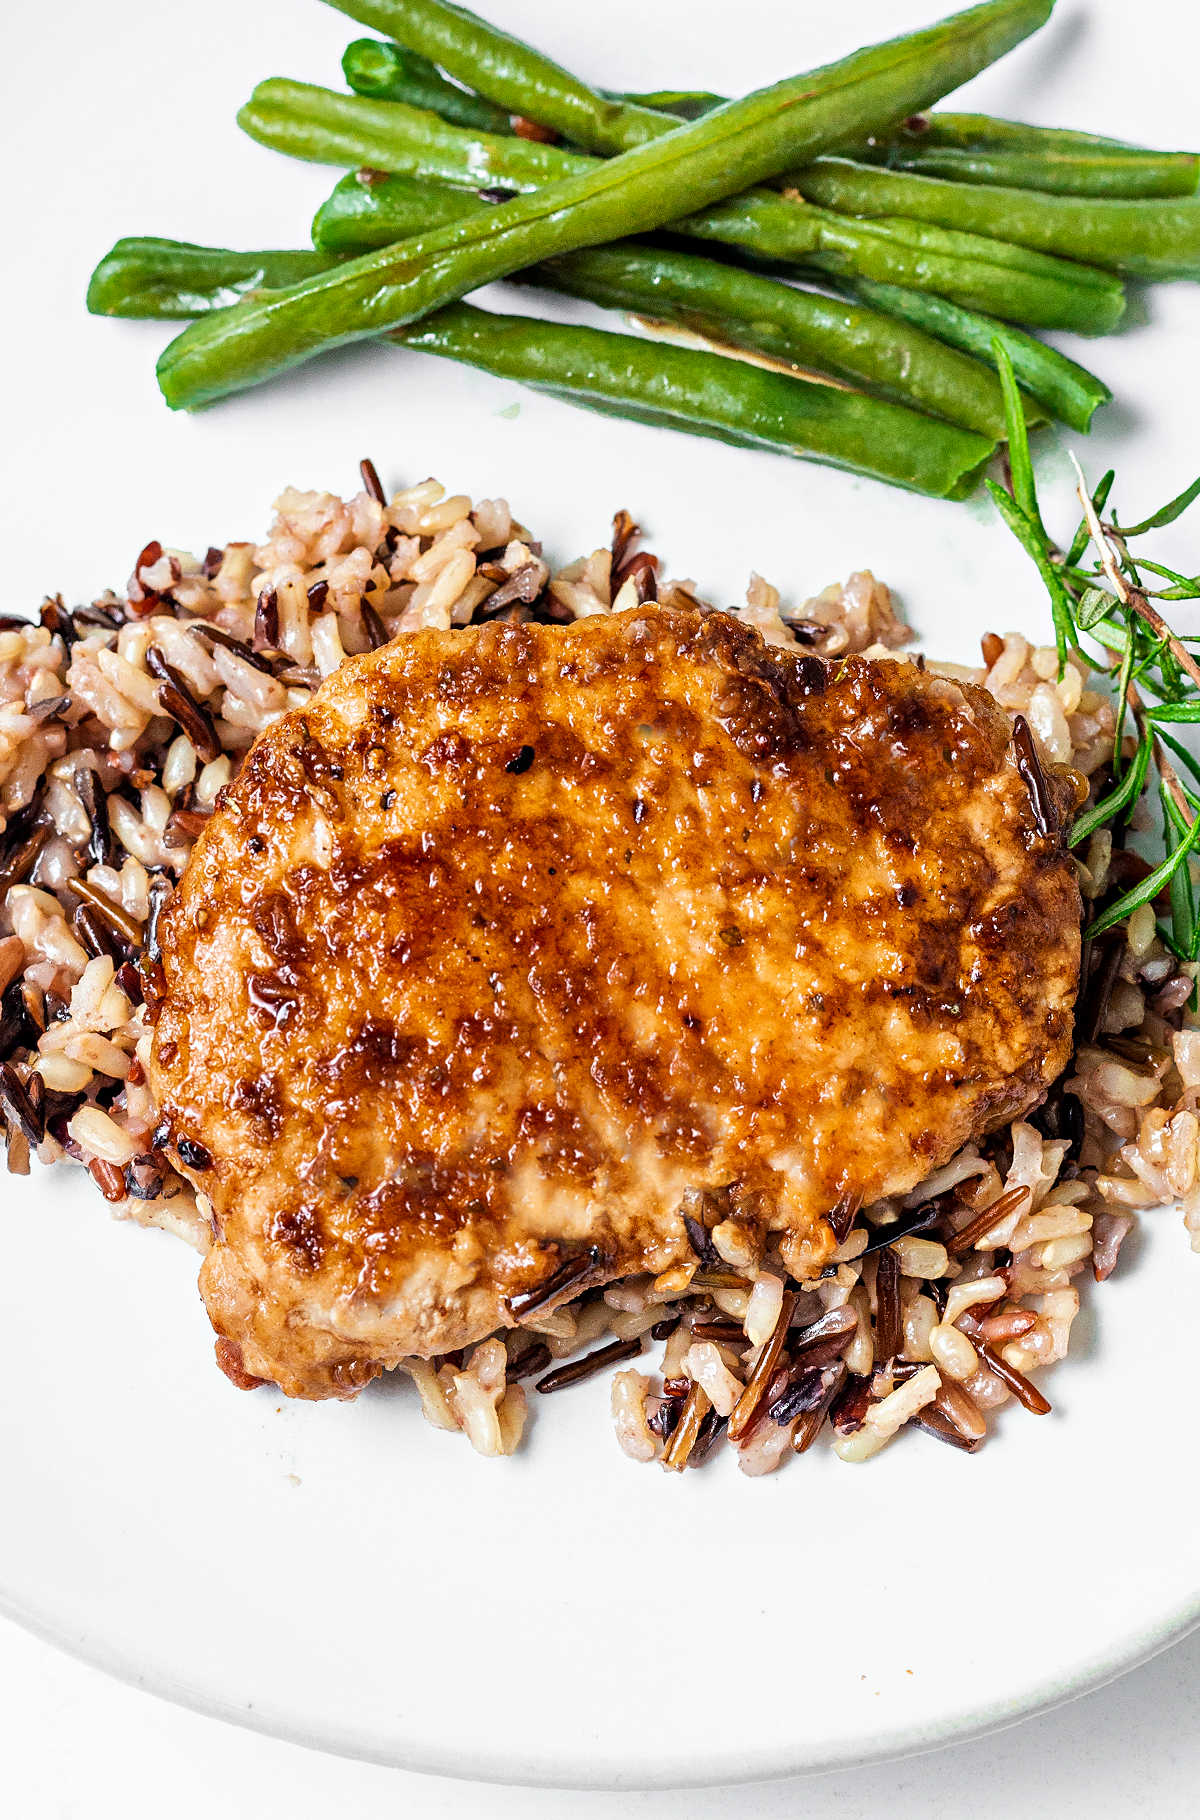 pork chop on a bed of rice on a plate with green beans and a sprig of rosemary on a table.